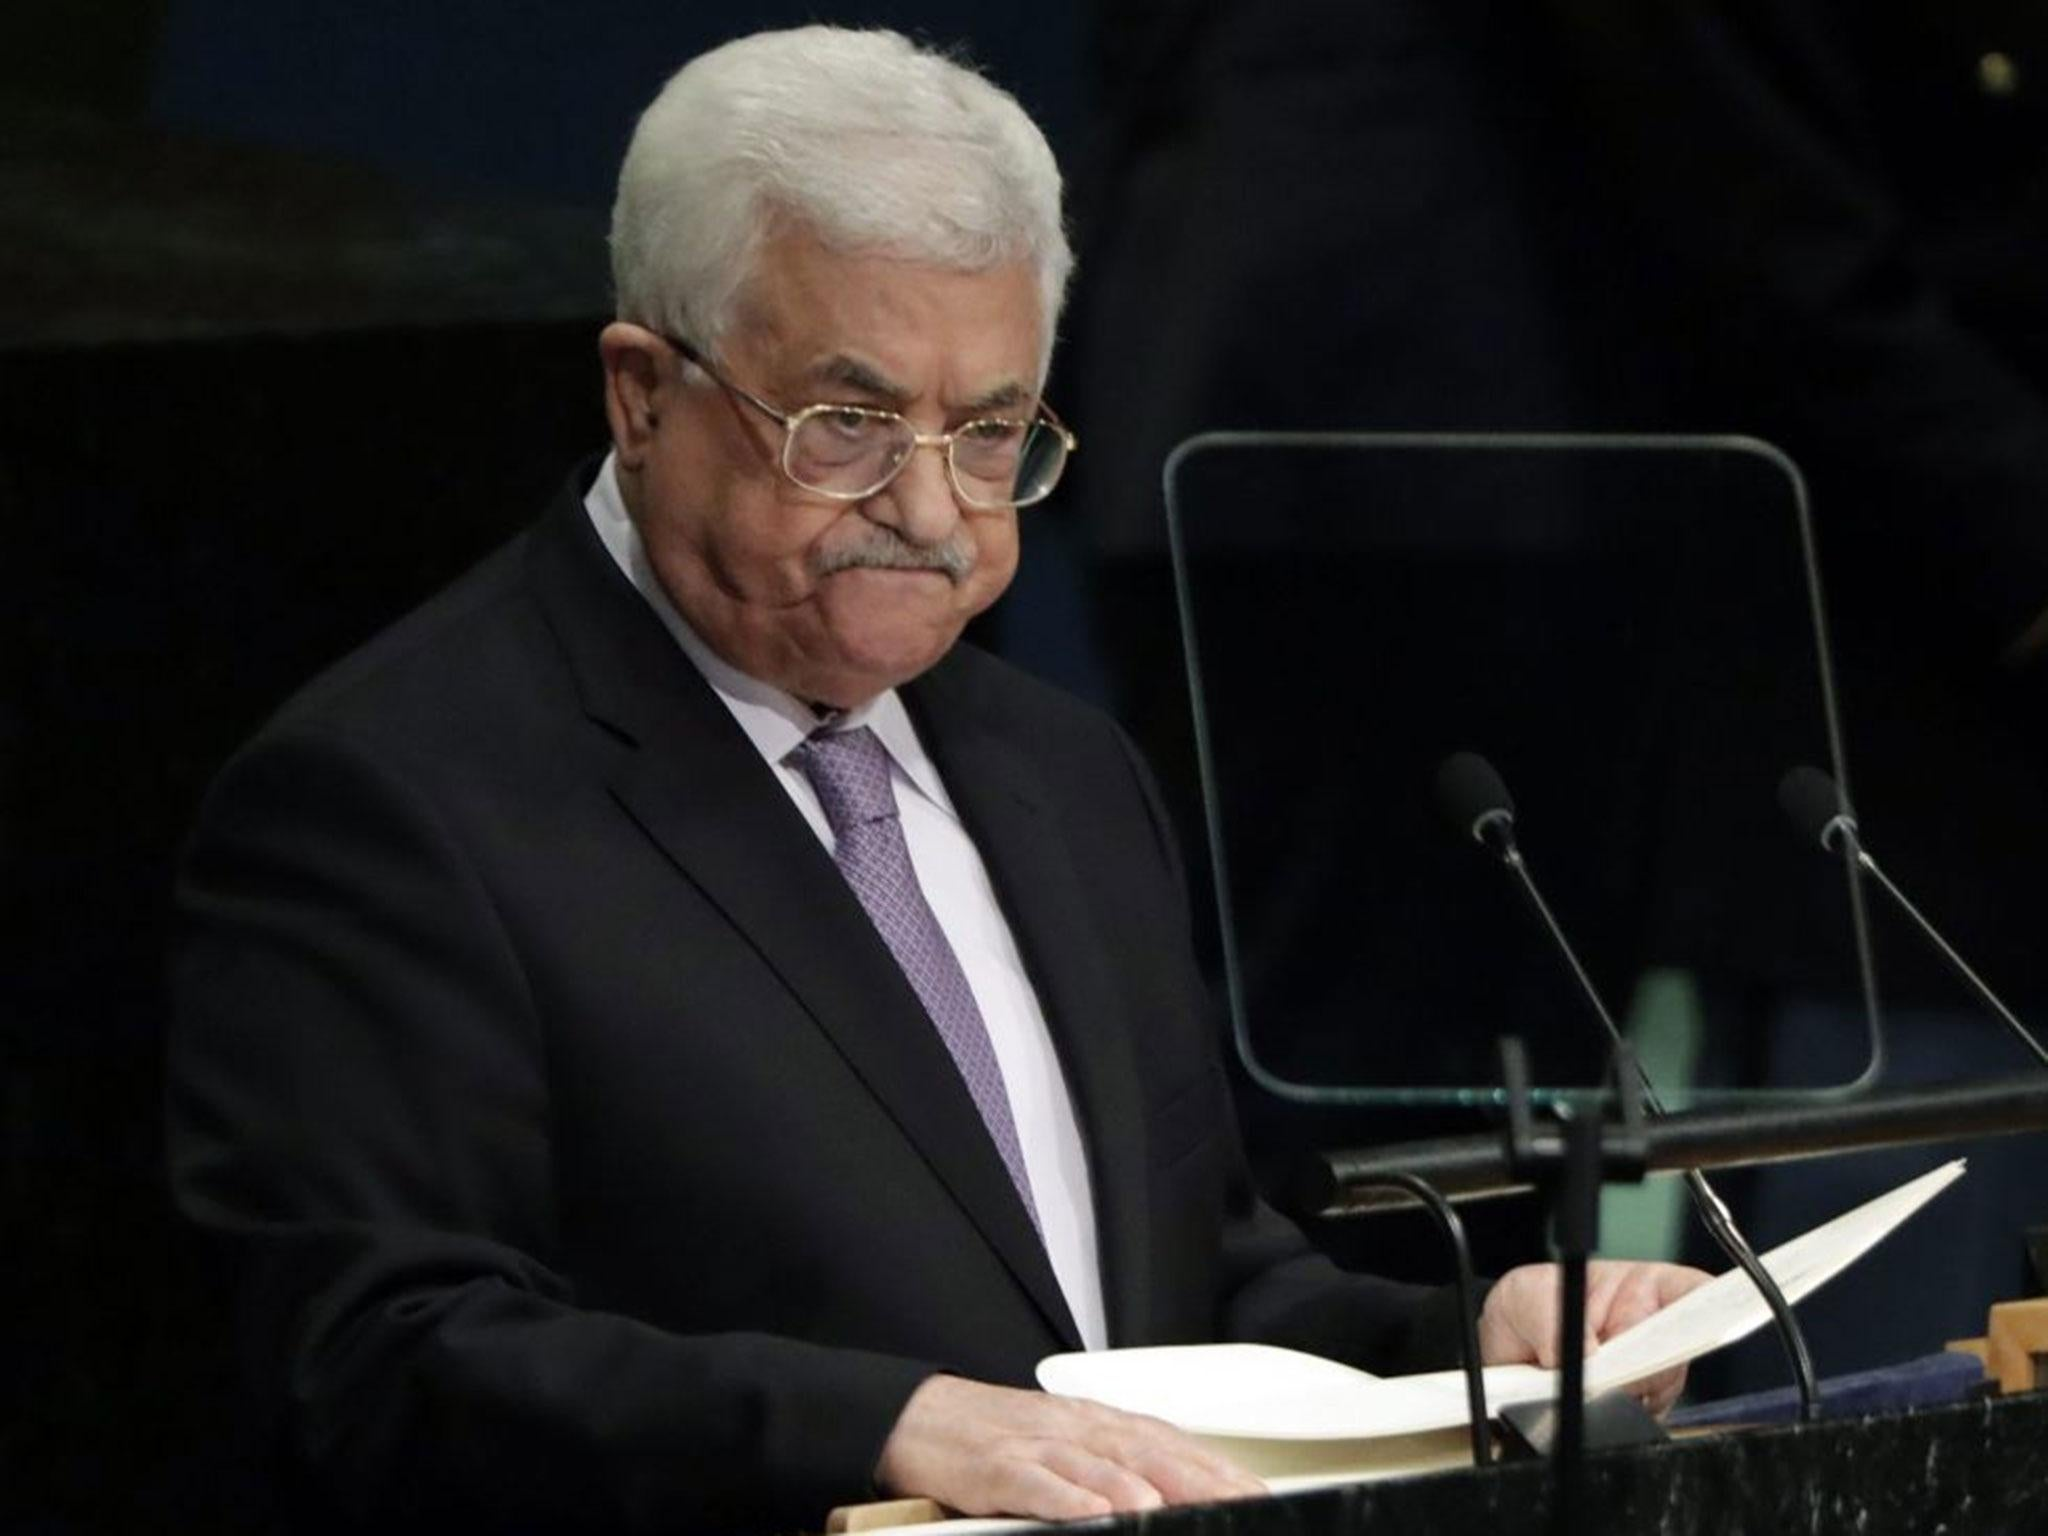 mahmoud abbas dissertation Abbas alleges link between zionists and nazis  i was reminded of this upon hearing the statement attributed on monday to mahmoud abbas,  he wrote a dissertation at a russian university in.